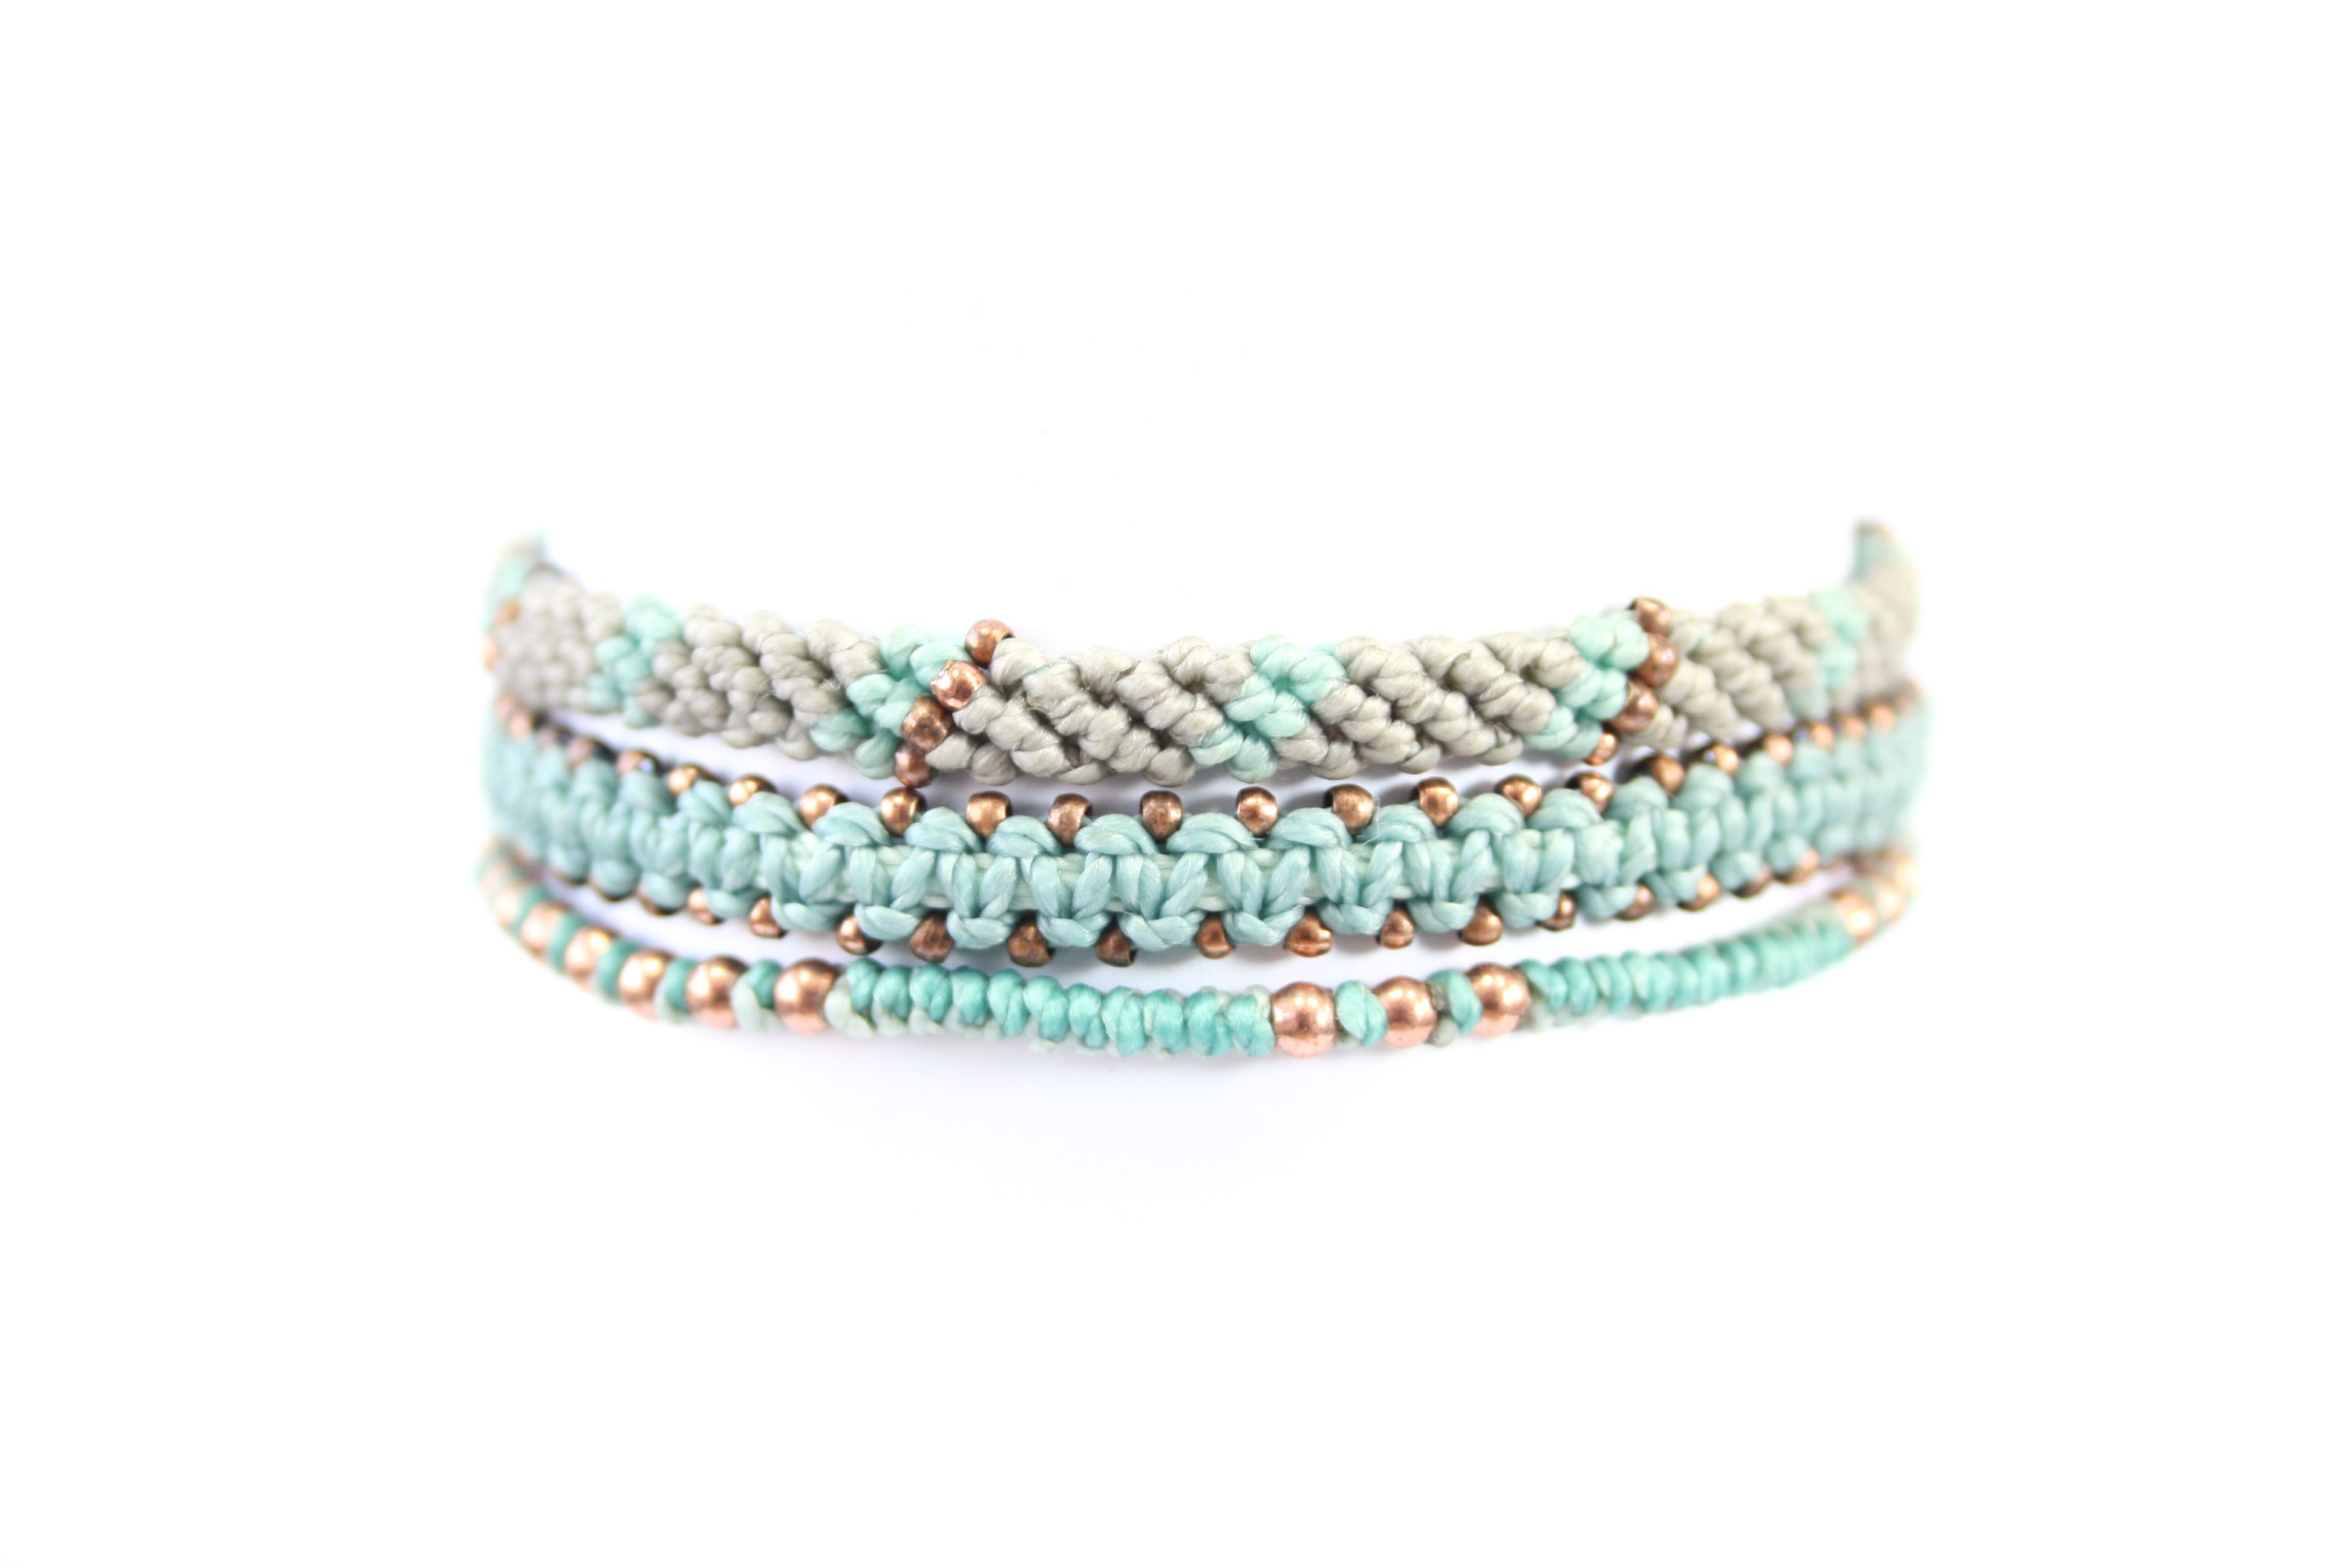 Wakami - 3 bracelets, mint color. Ethically handmade in Guatemala.